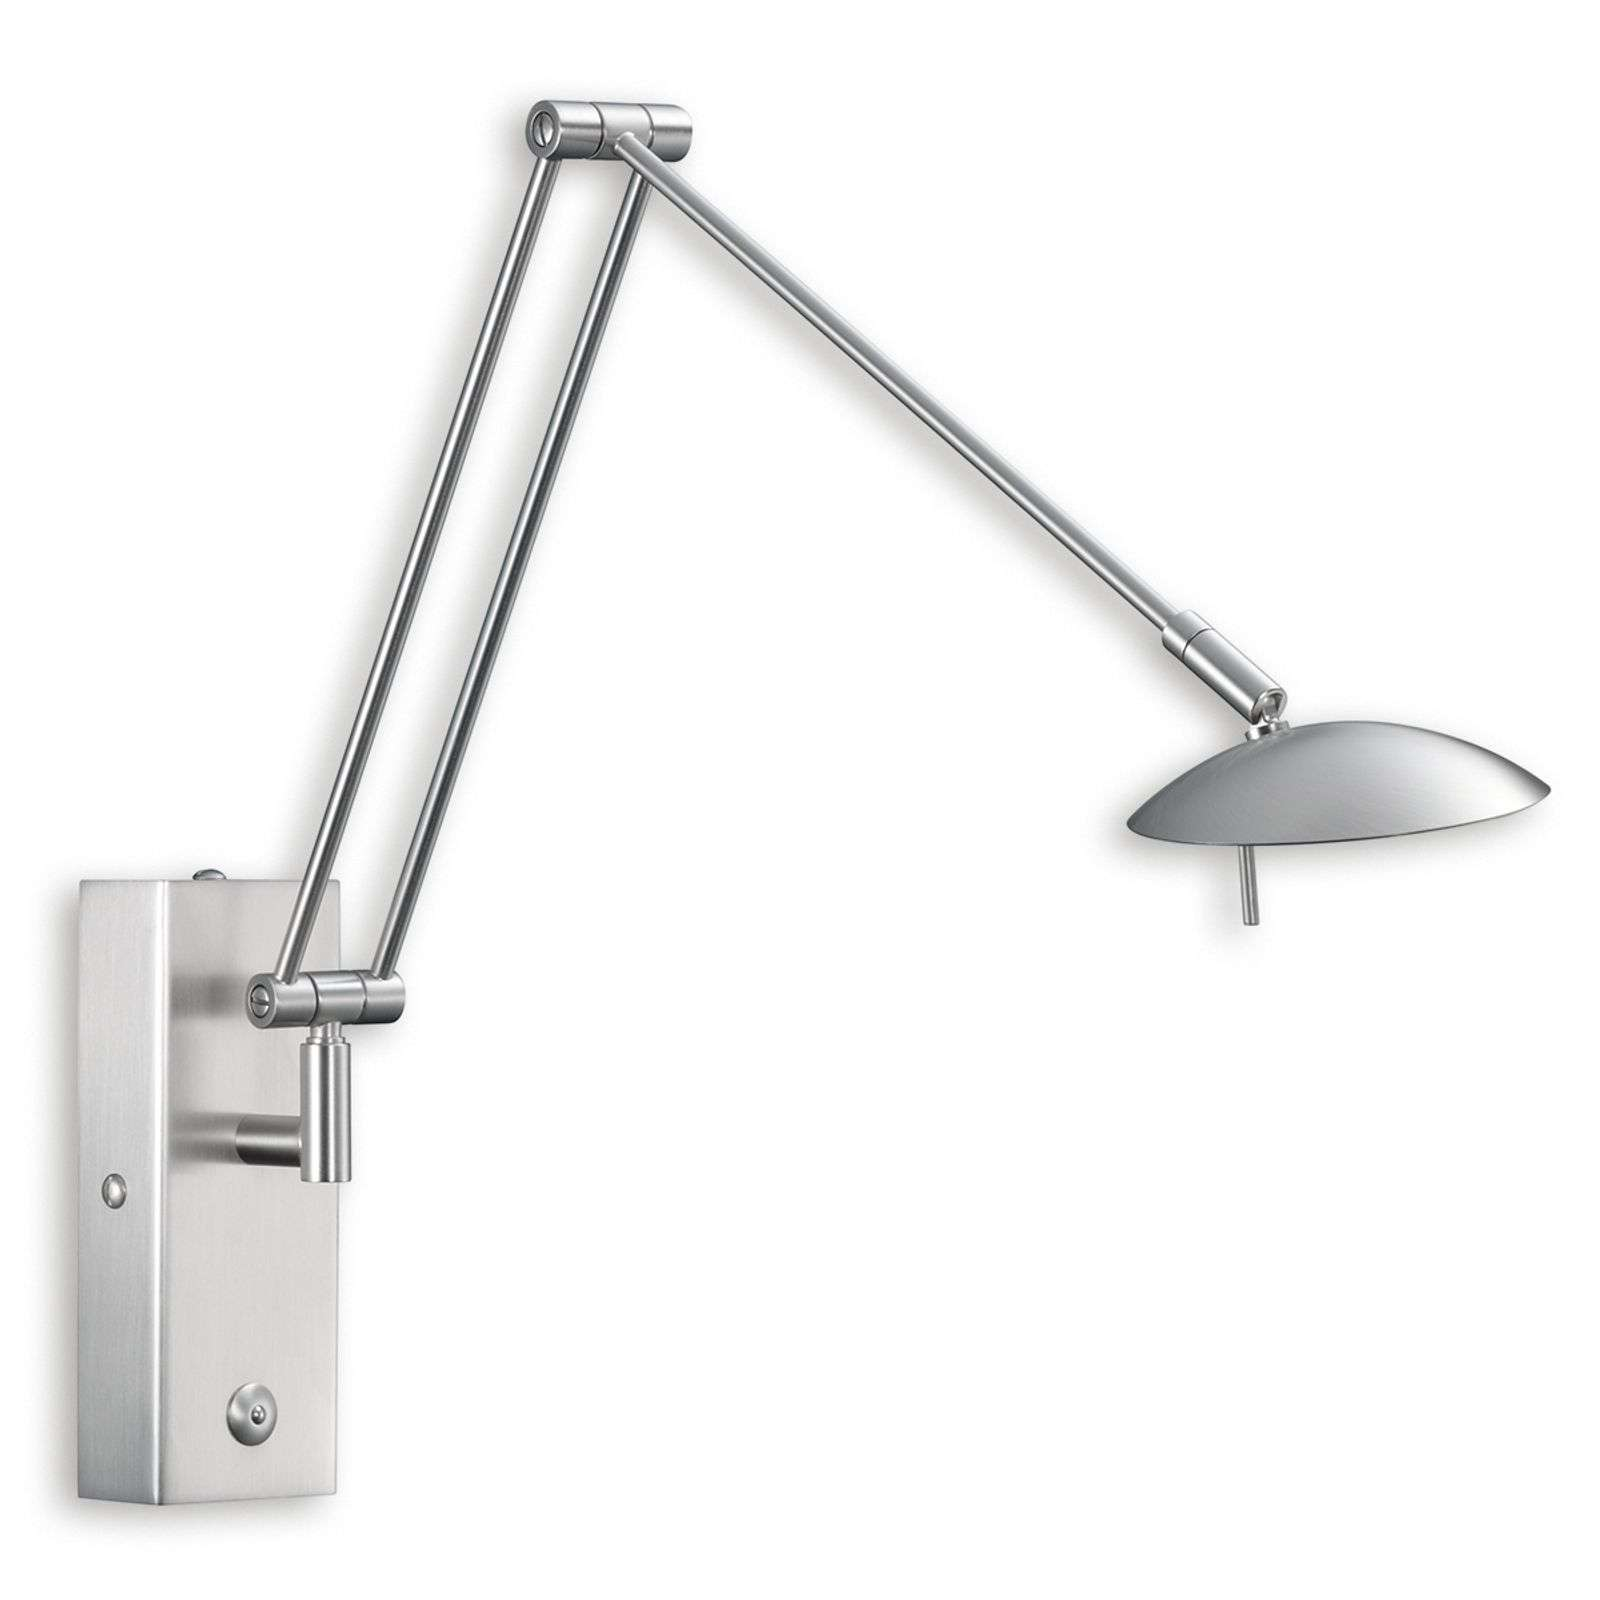 Lámpara de pared LED LINK flexible níquel mate